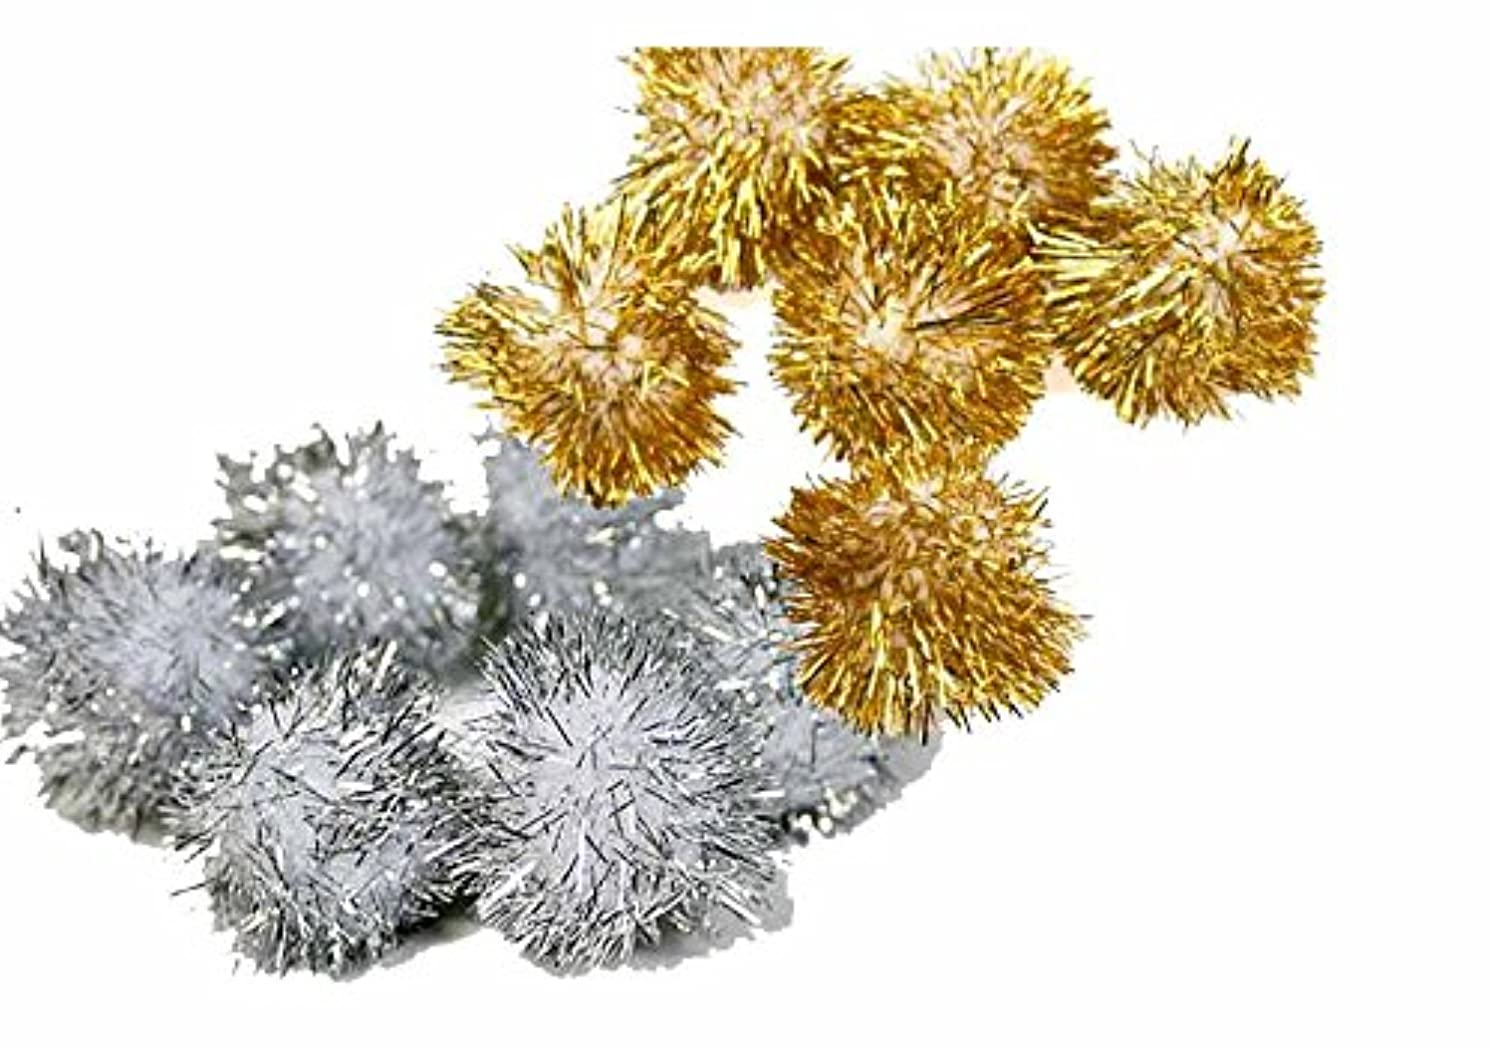 Creation Station Glitter Poms in Assorted Sizes, Gold/Silver